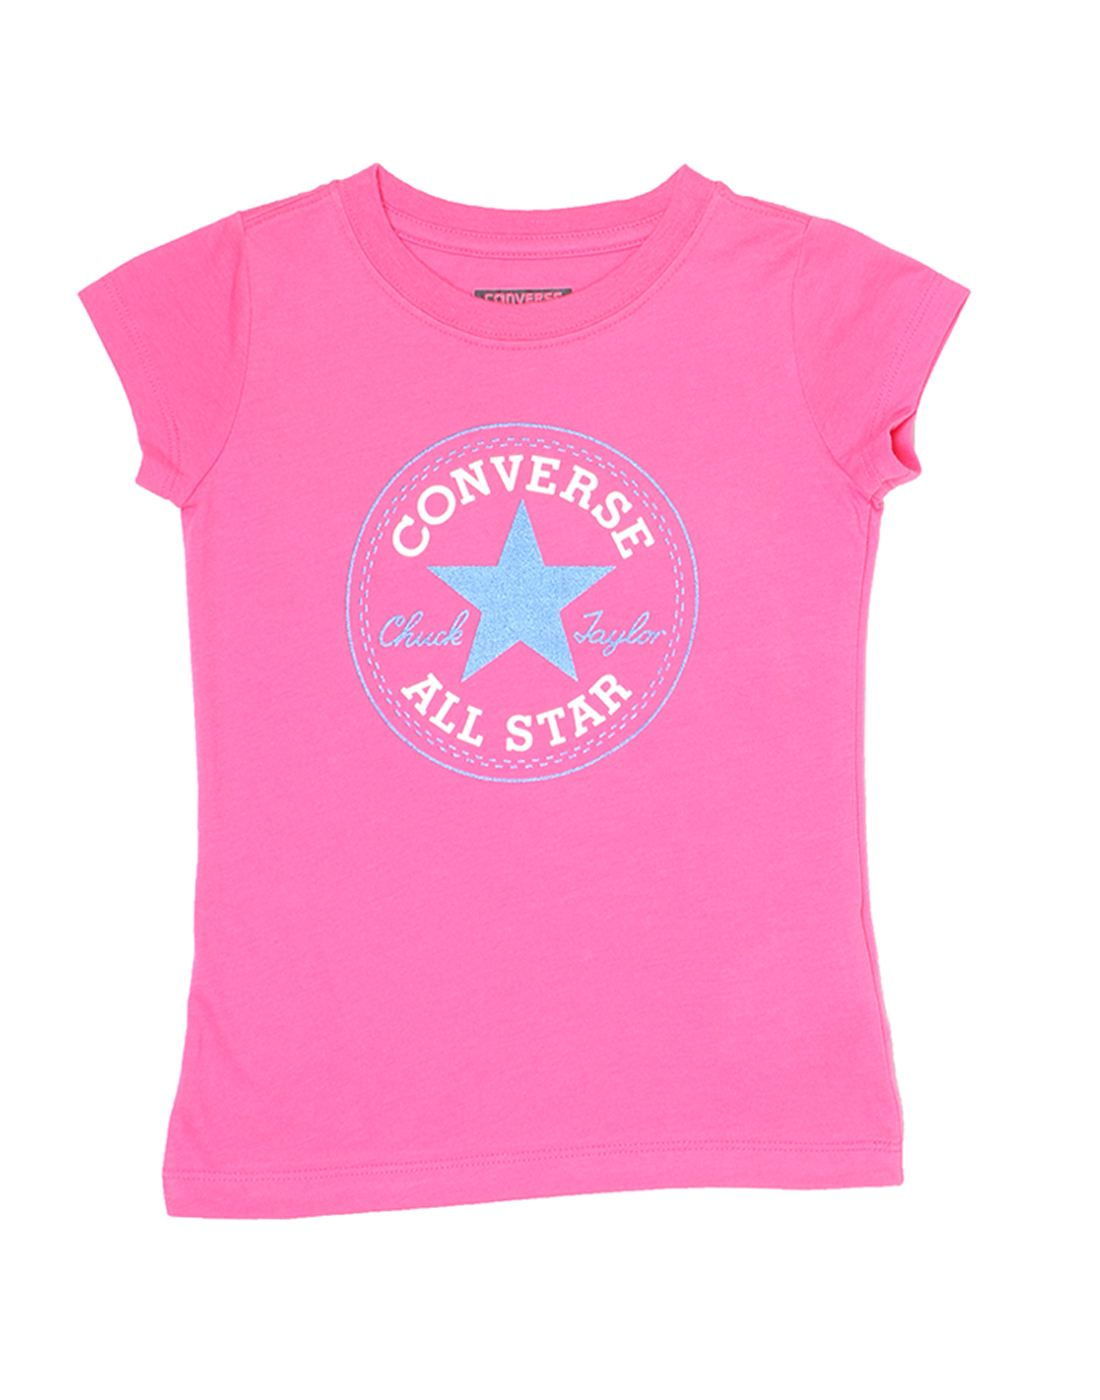 Converse Girls Pink Top